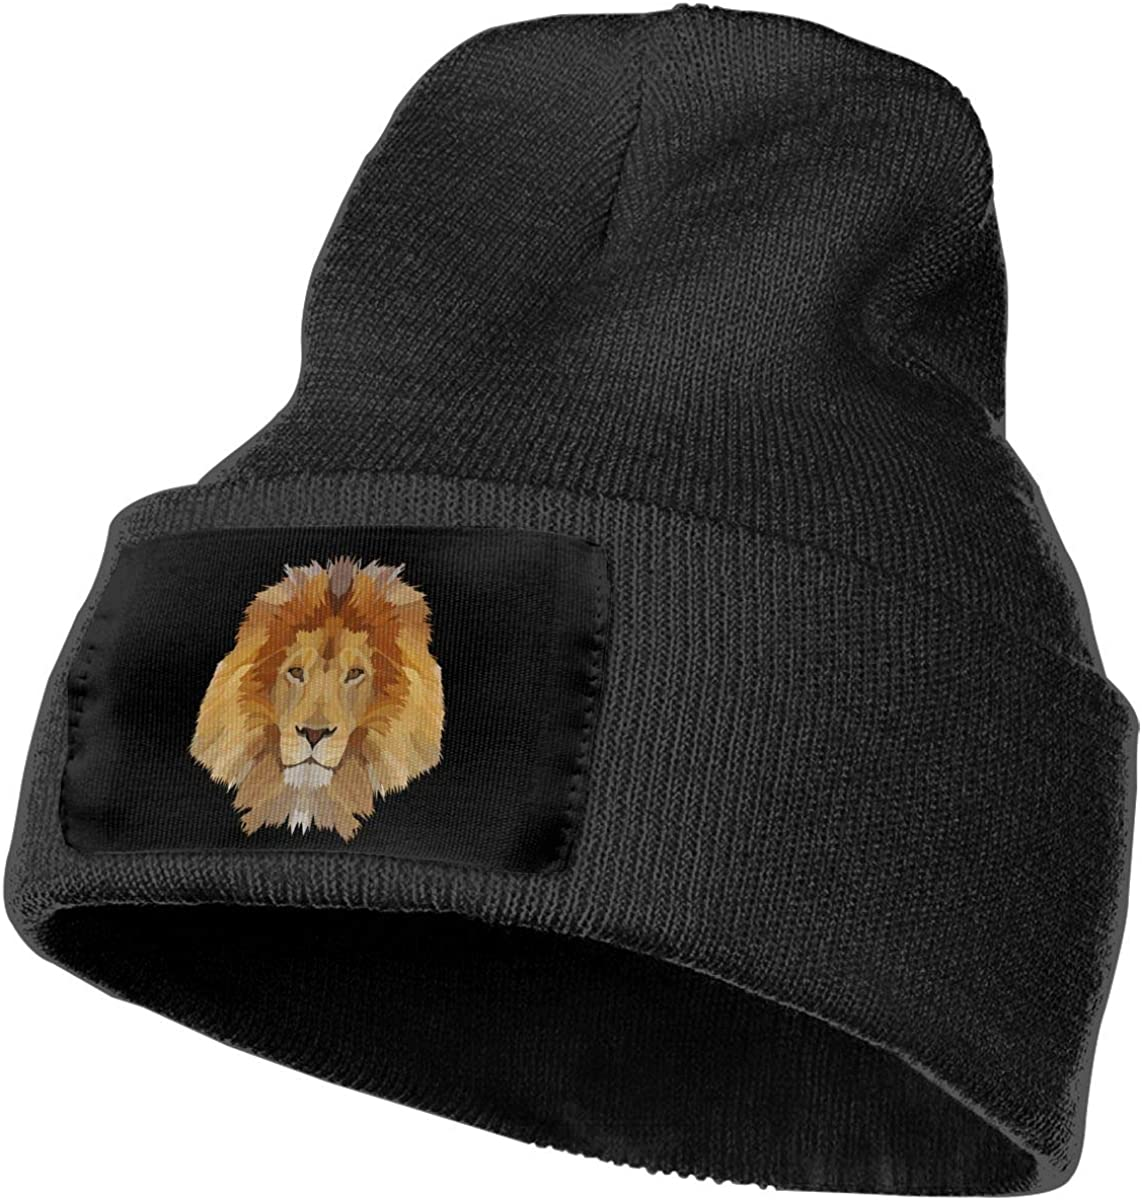 The King of Lion Unisex Fashion Knitted Hat Luxury Hip-Hop Cap